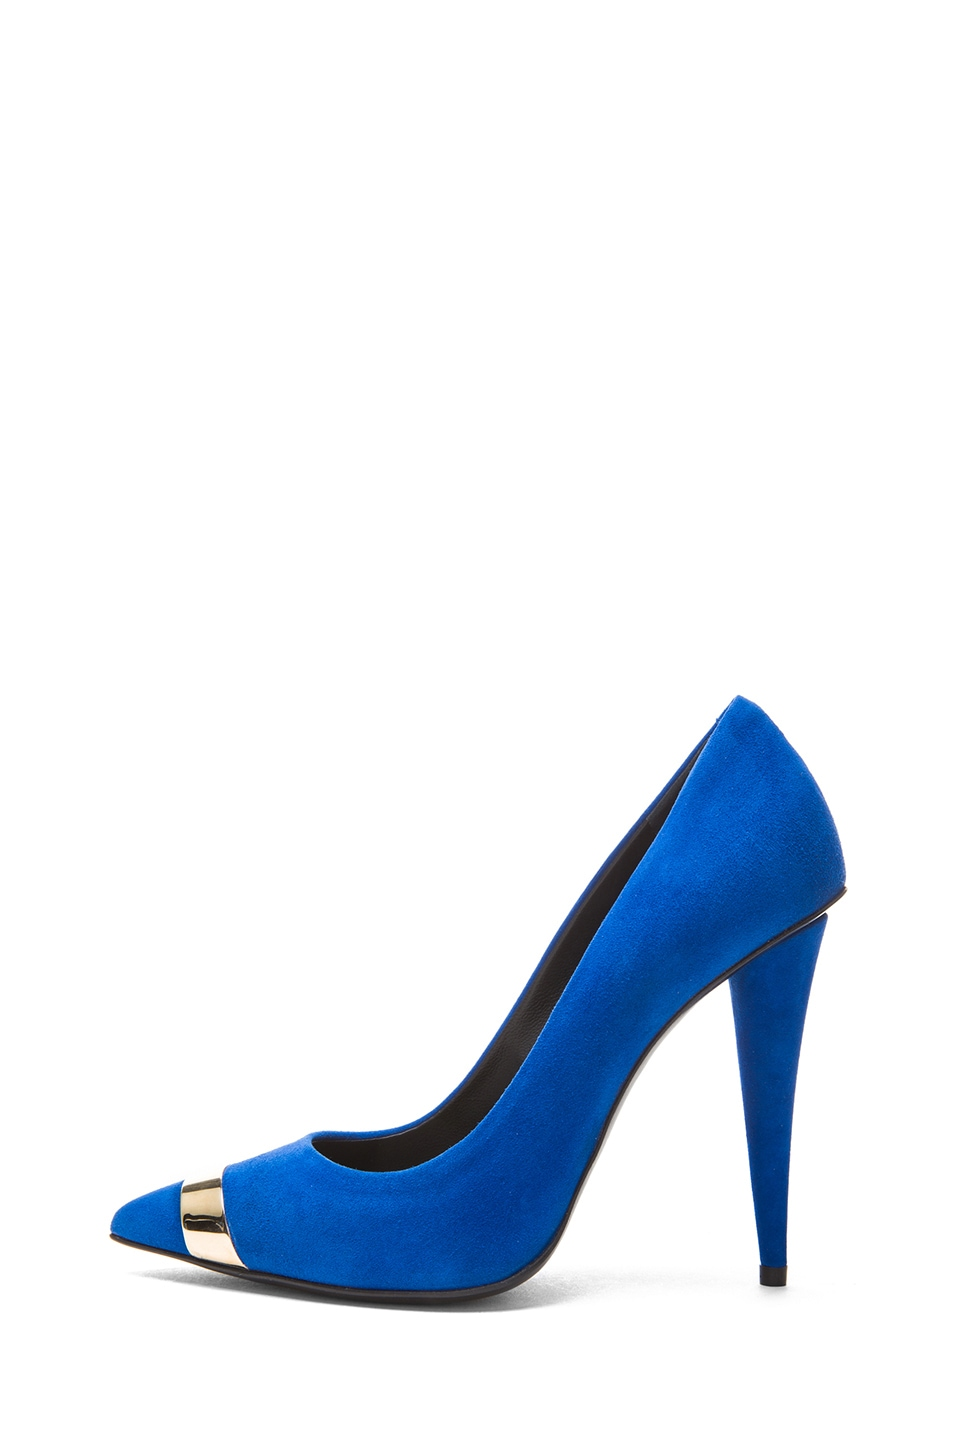 Image 1 of Giuseppe Zanotti Suede Pump in Klein